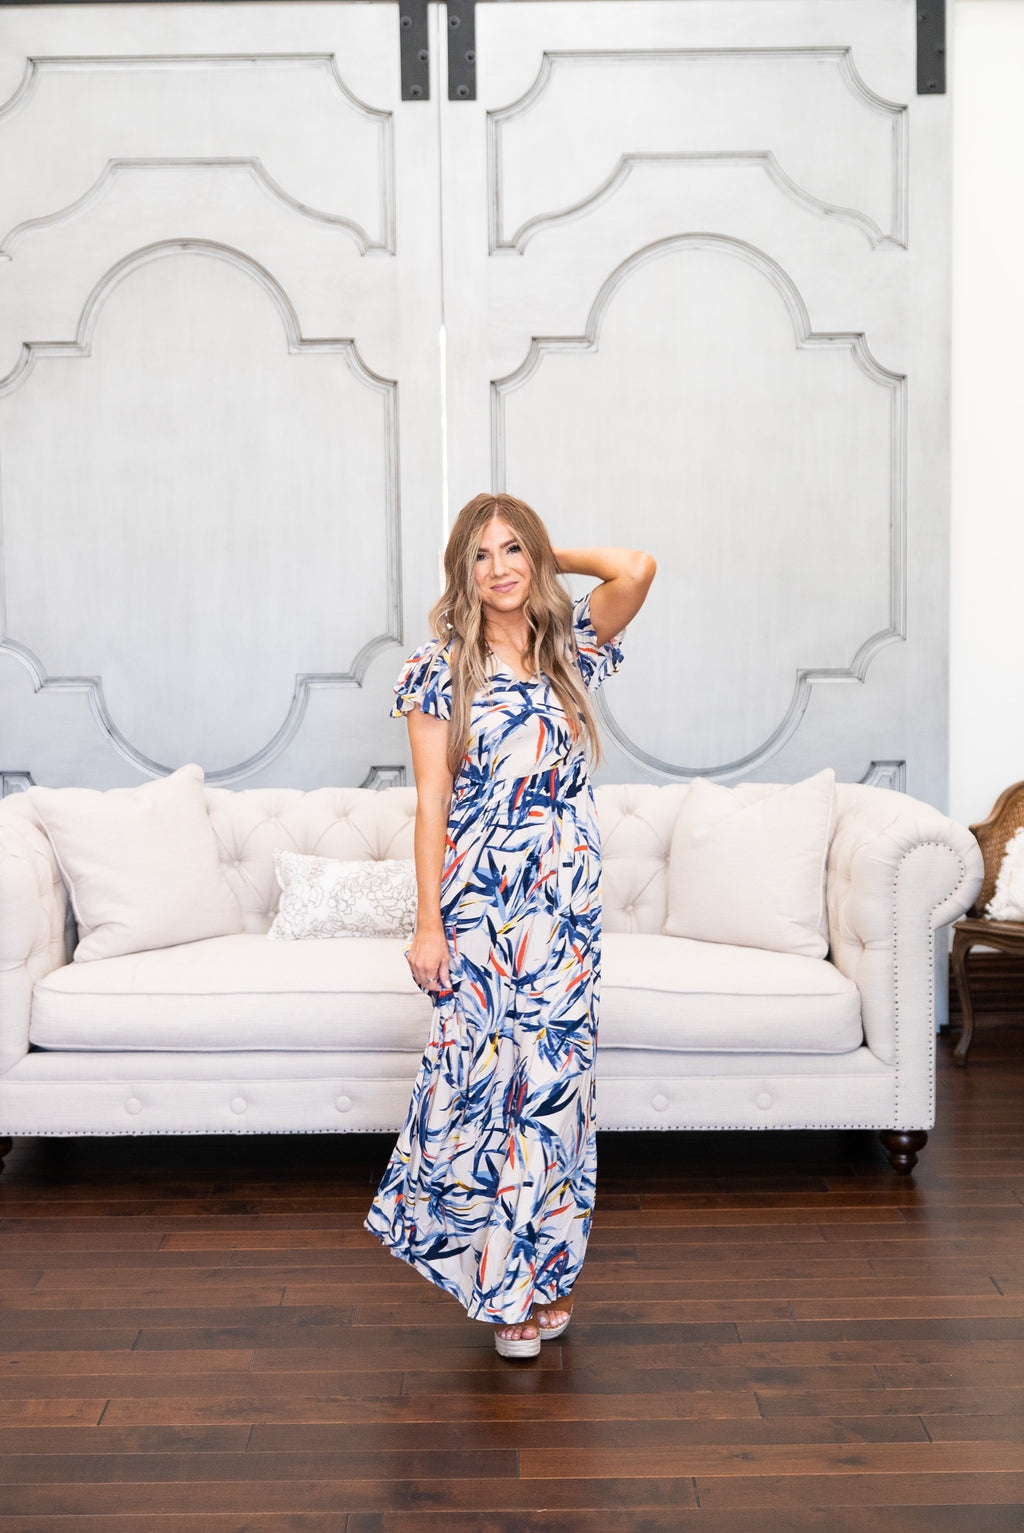 The Martinique Print Maxi